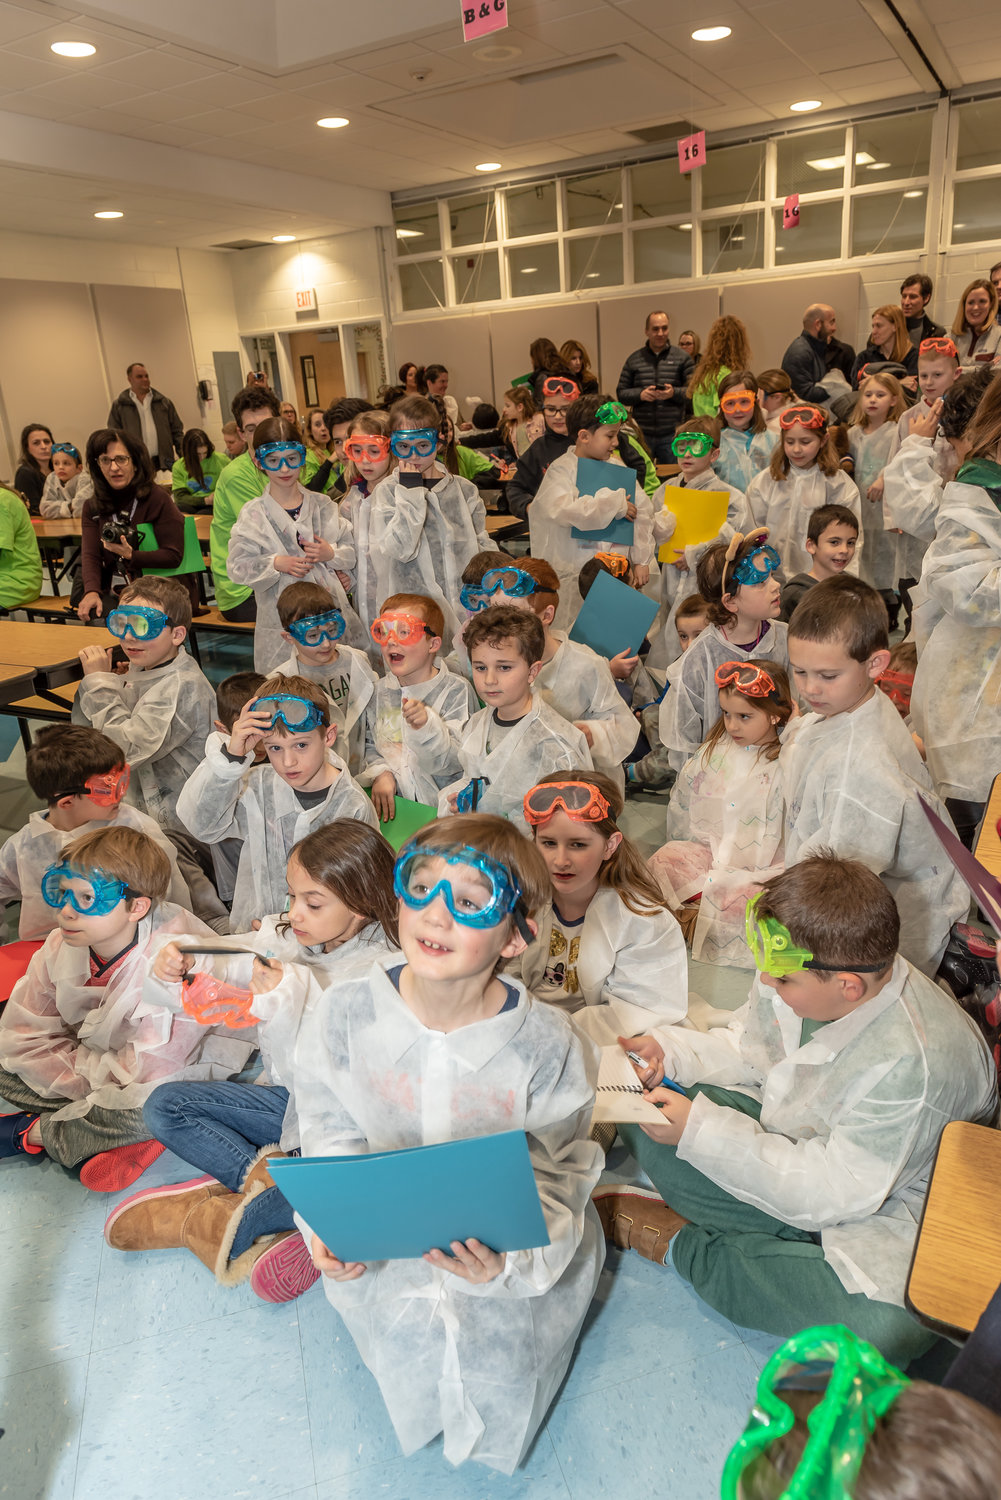 Wearing goggles and lab coats, the young scientists watched a video on scientific processes.